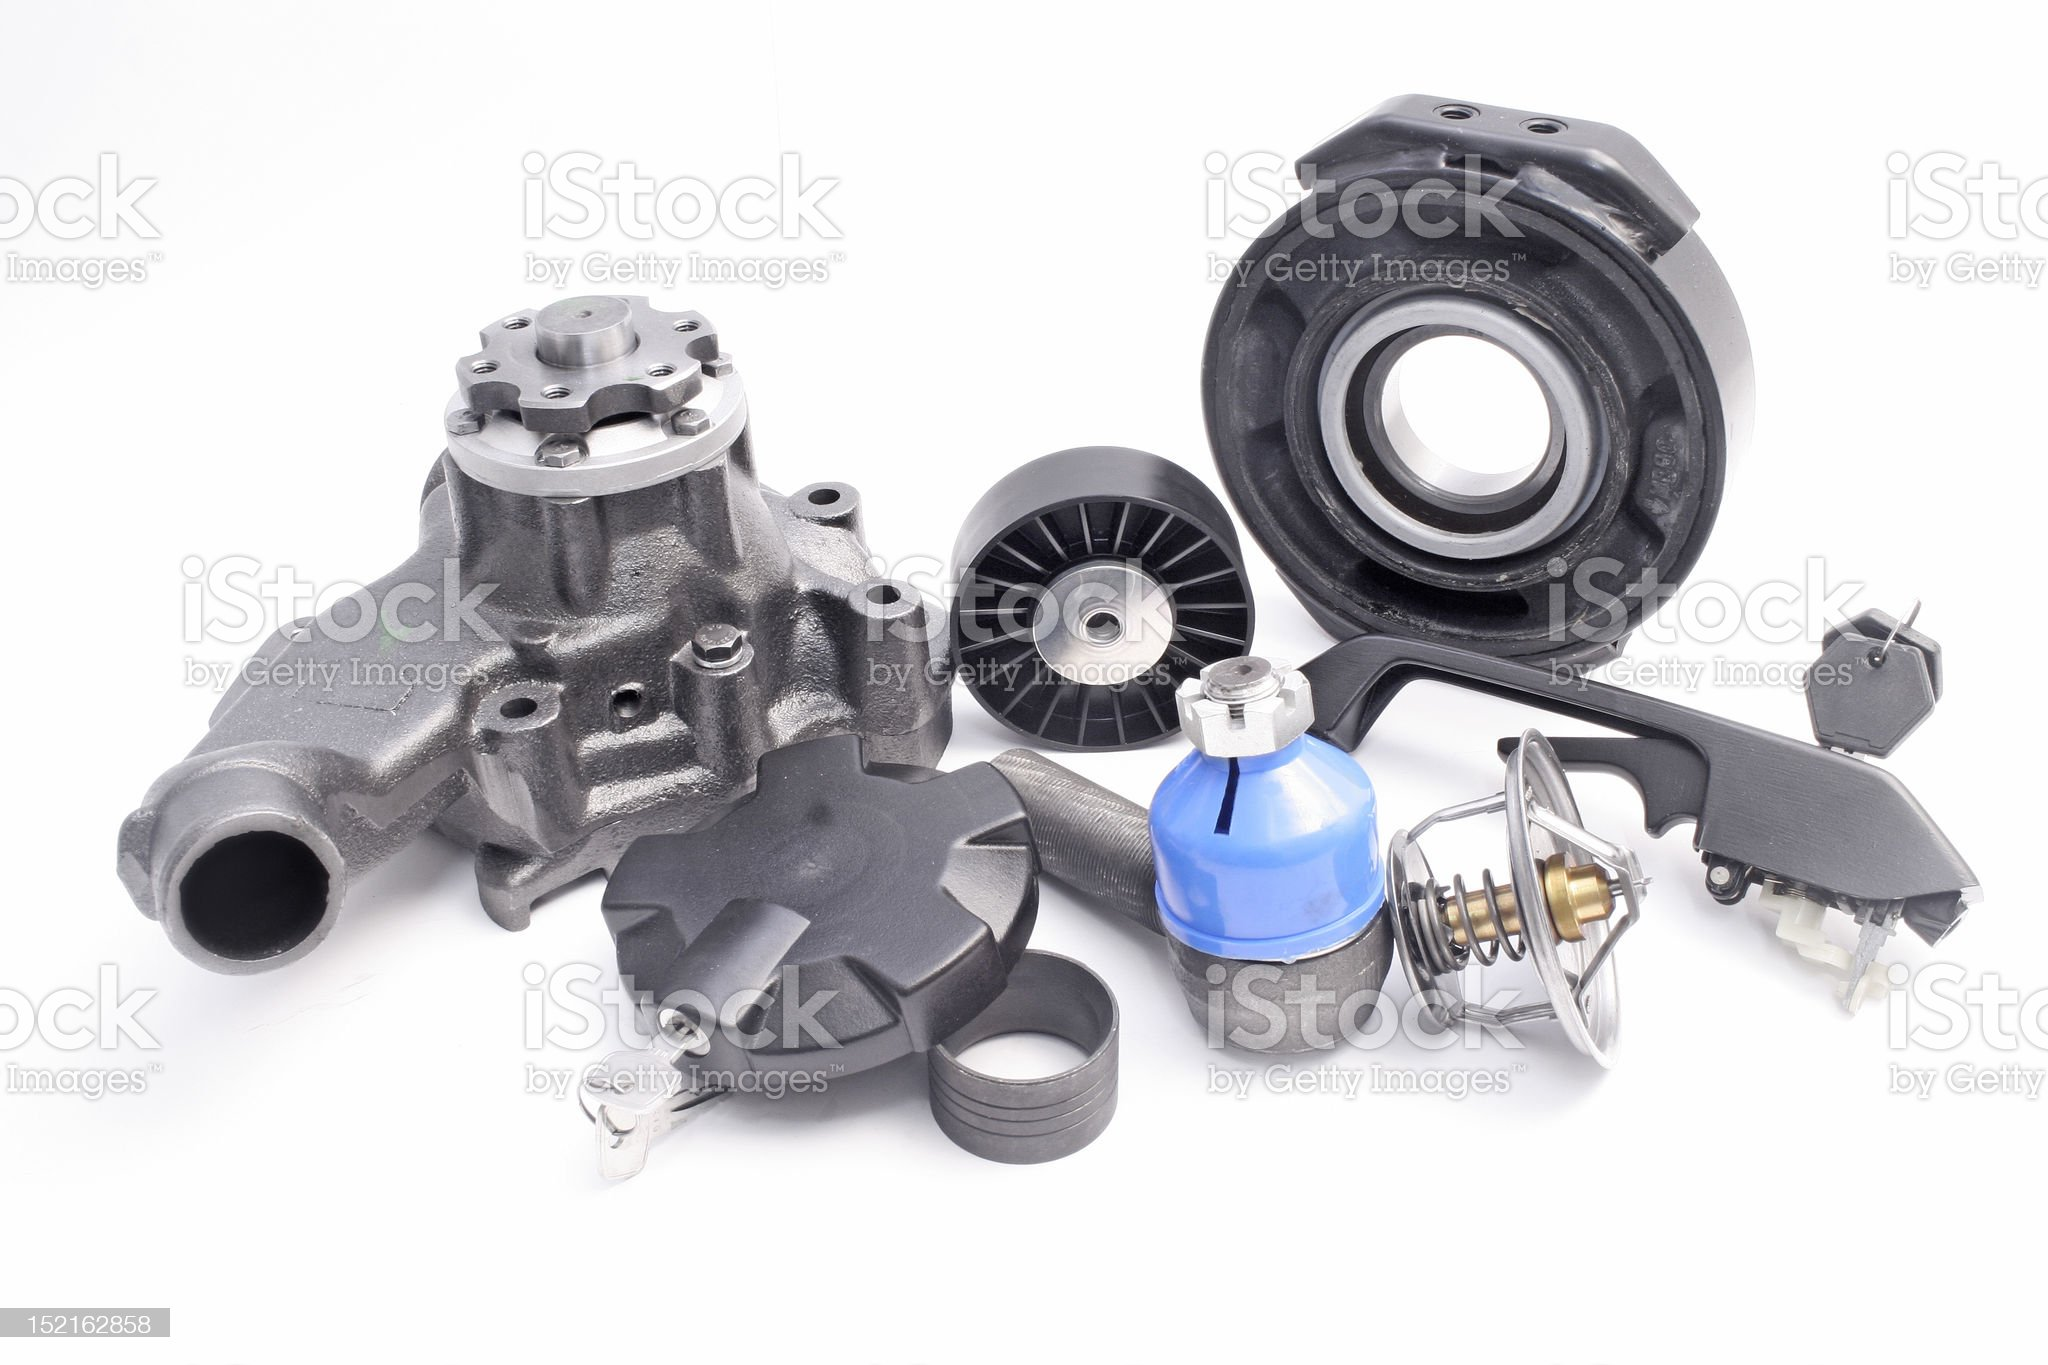 truck and car parts royalty-free stock photo